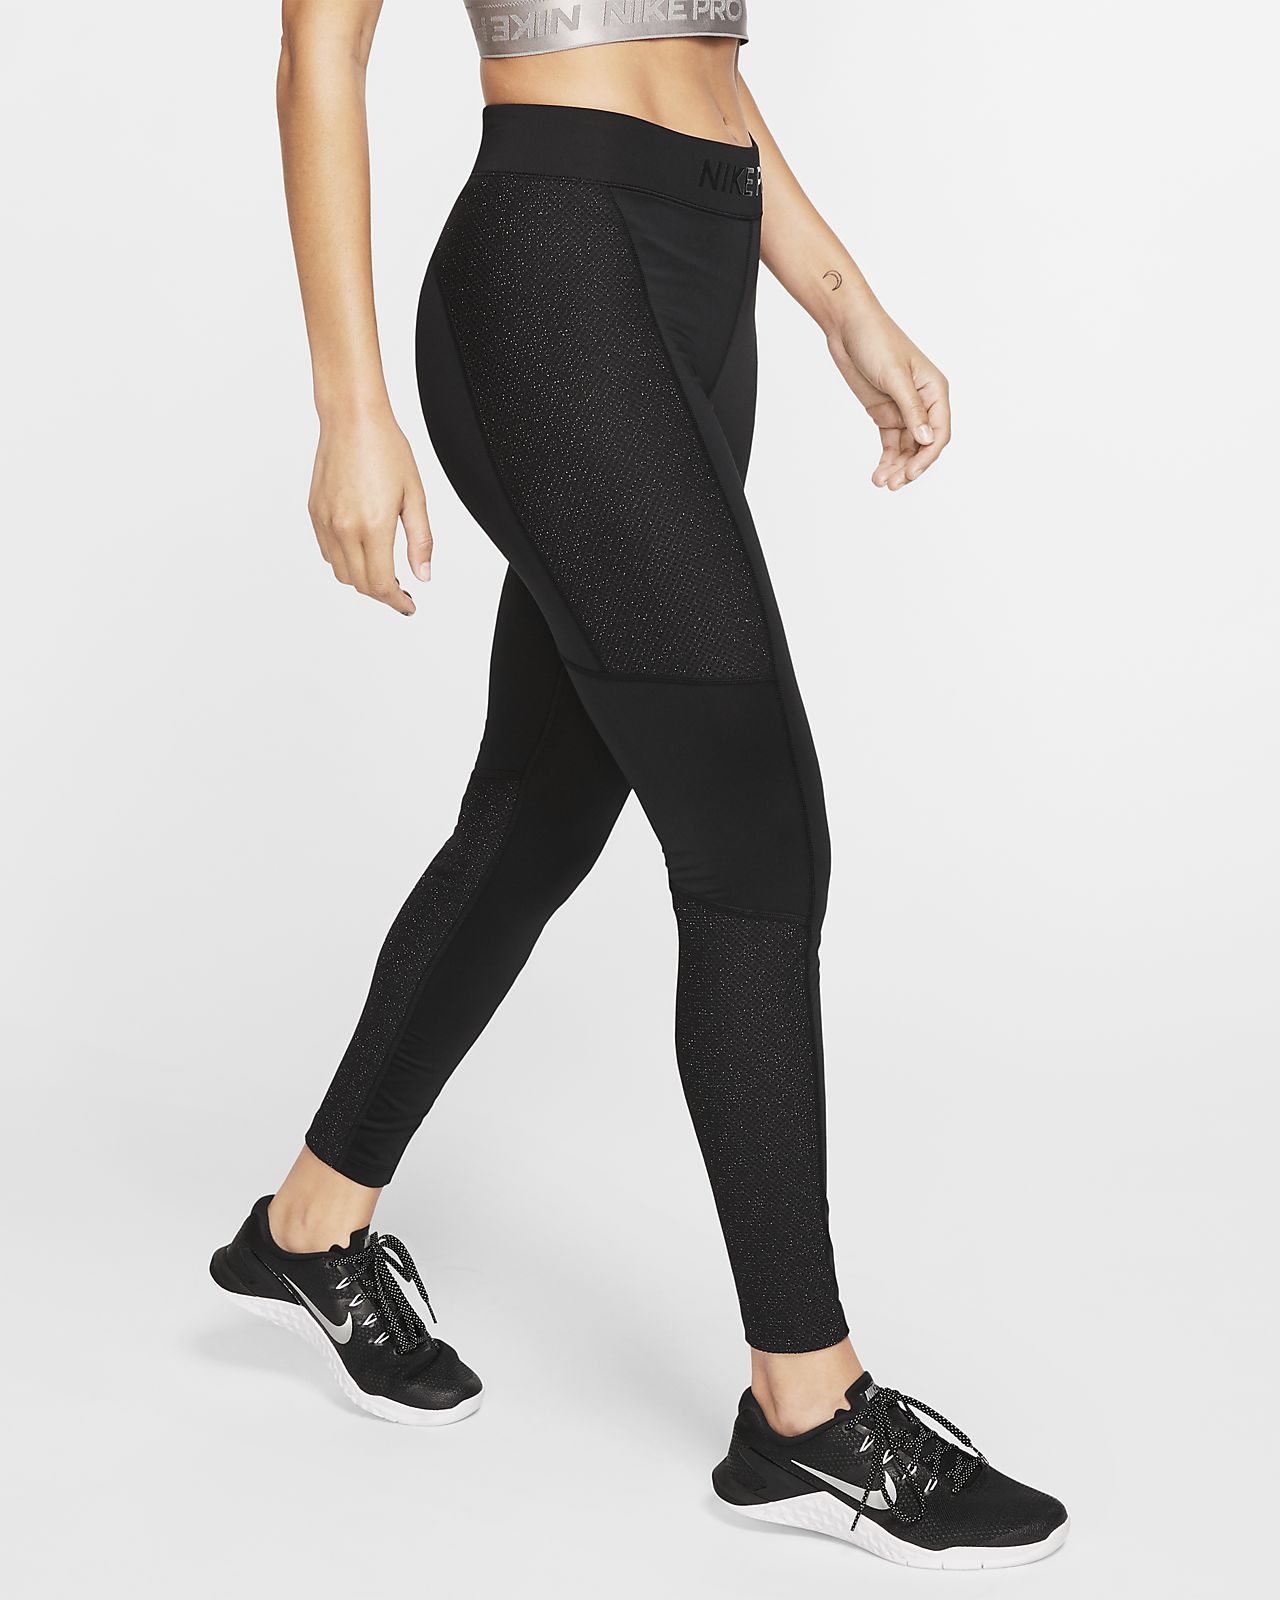 Trend Nike Tights Pink (Women) Nike Tights New Arrivals